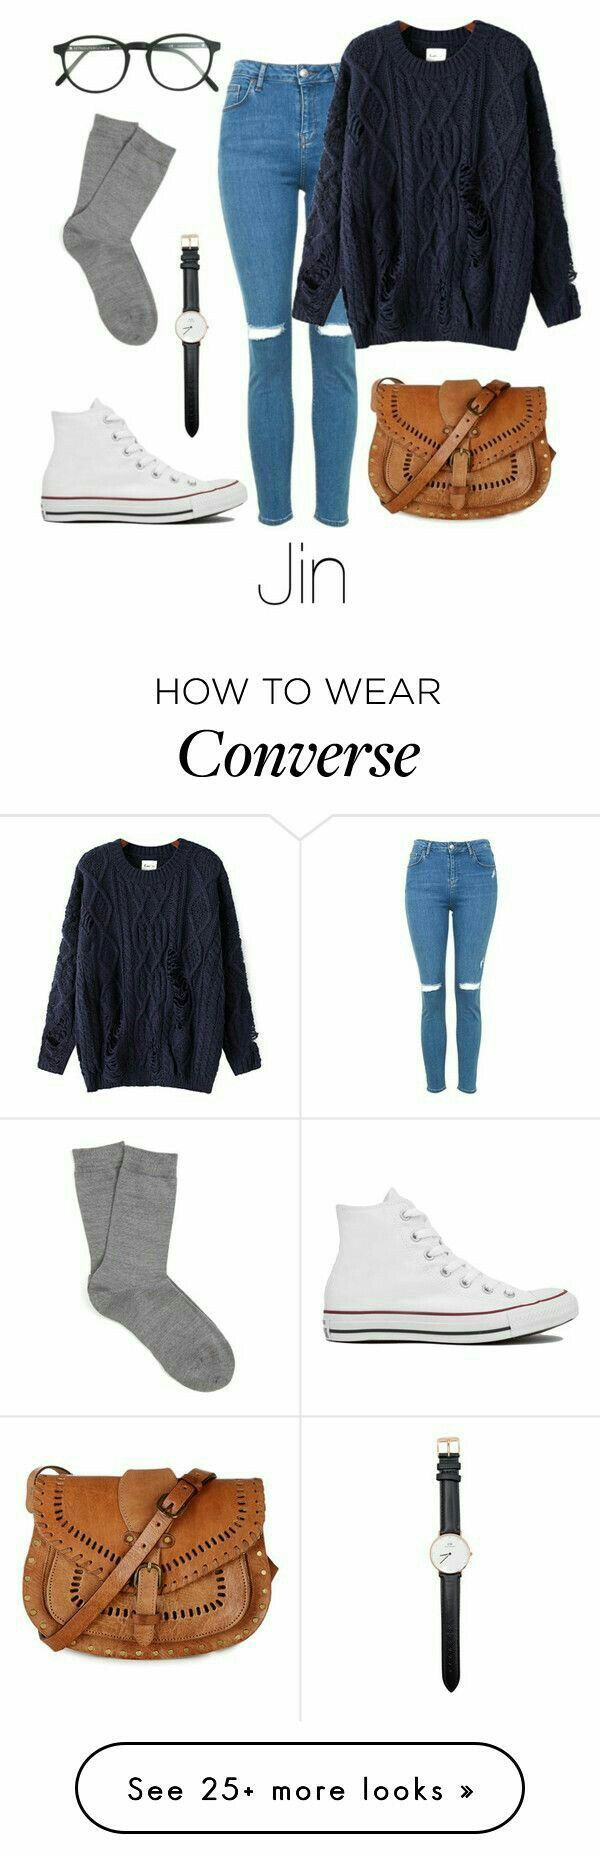 How To wear converse /Jin #howtowear